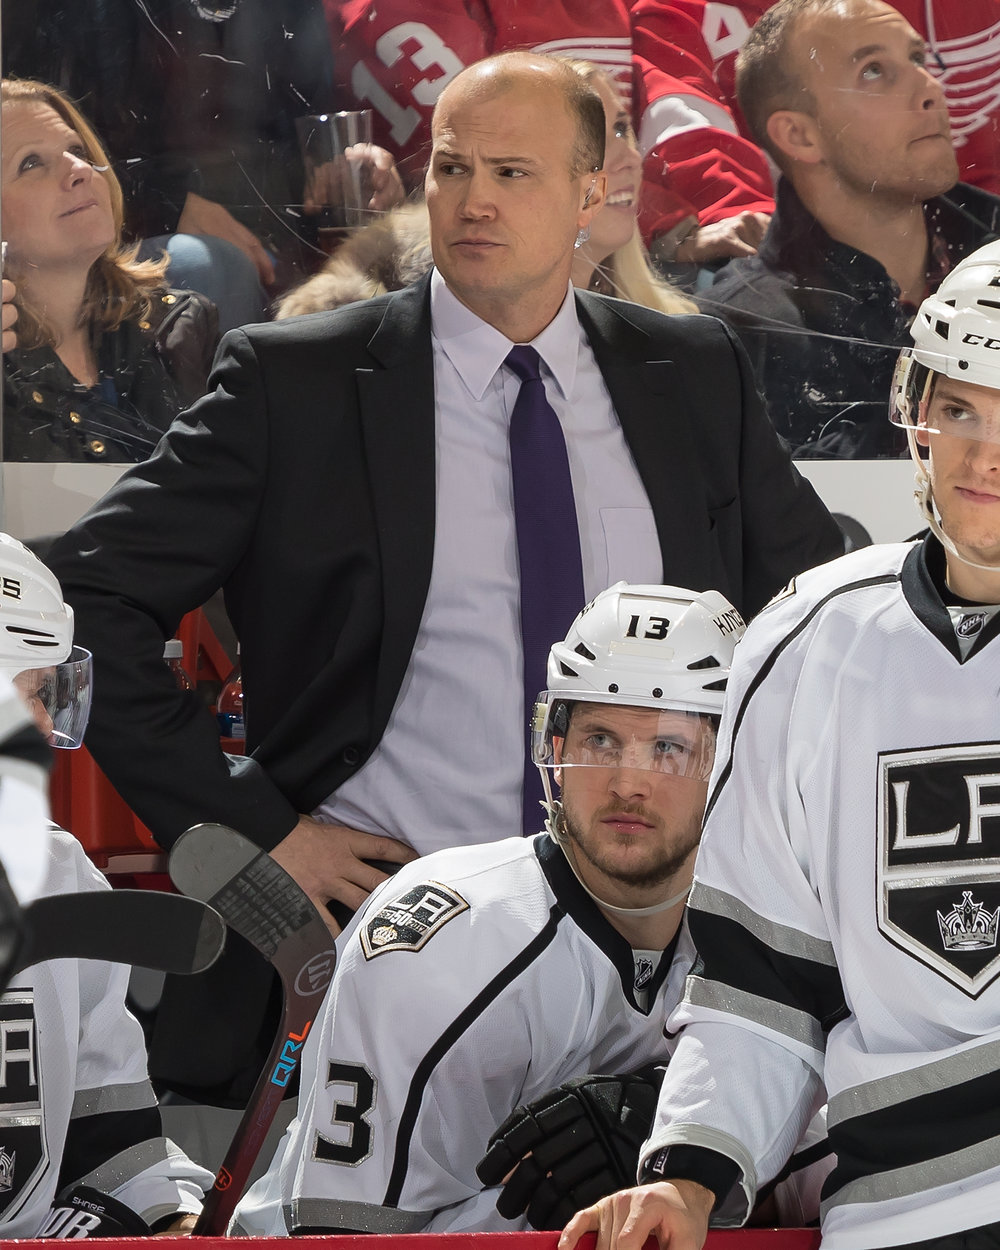 Davis Payne behind the bench - courtesy of Getty Images